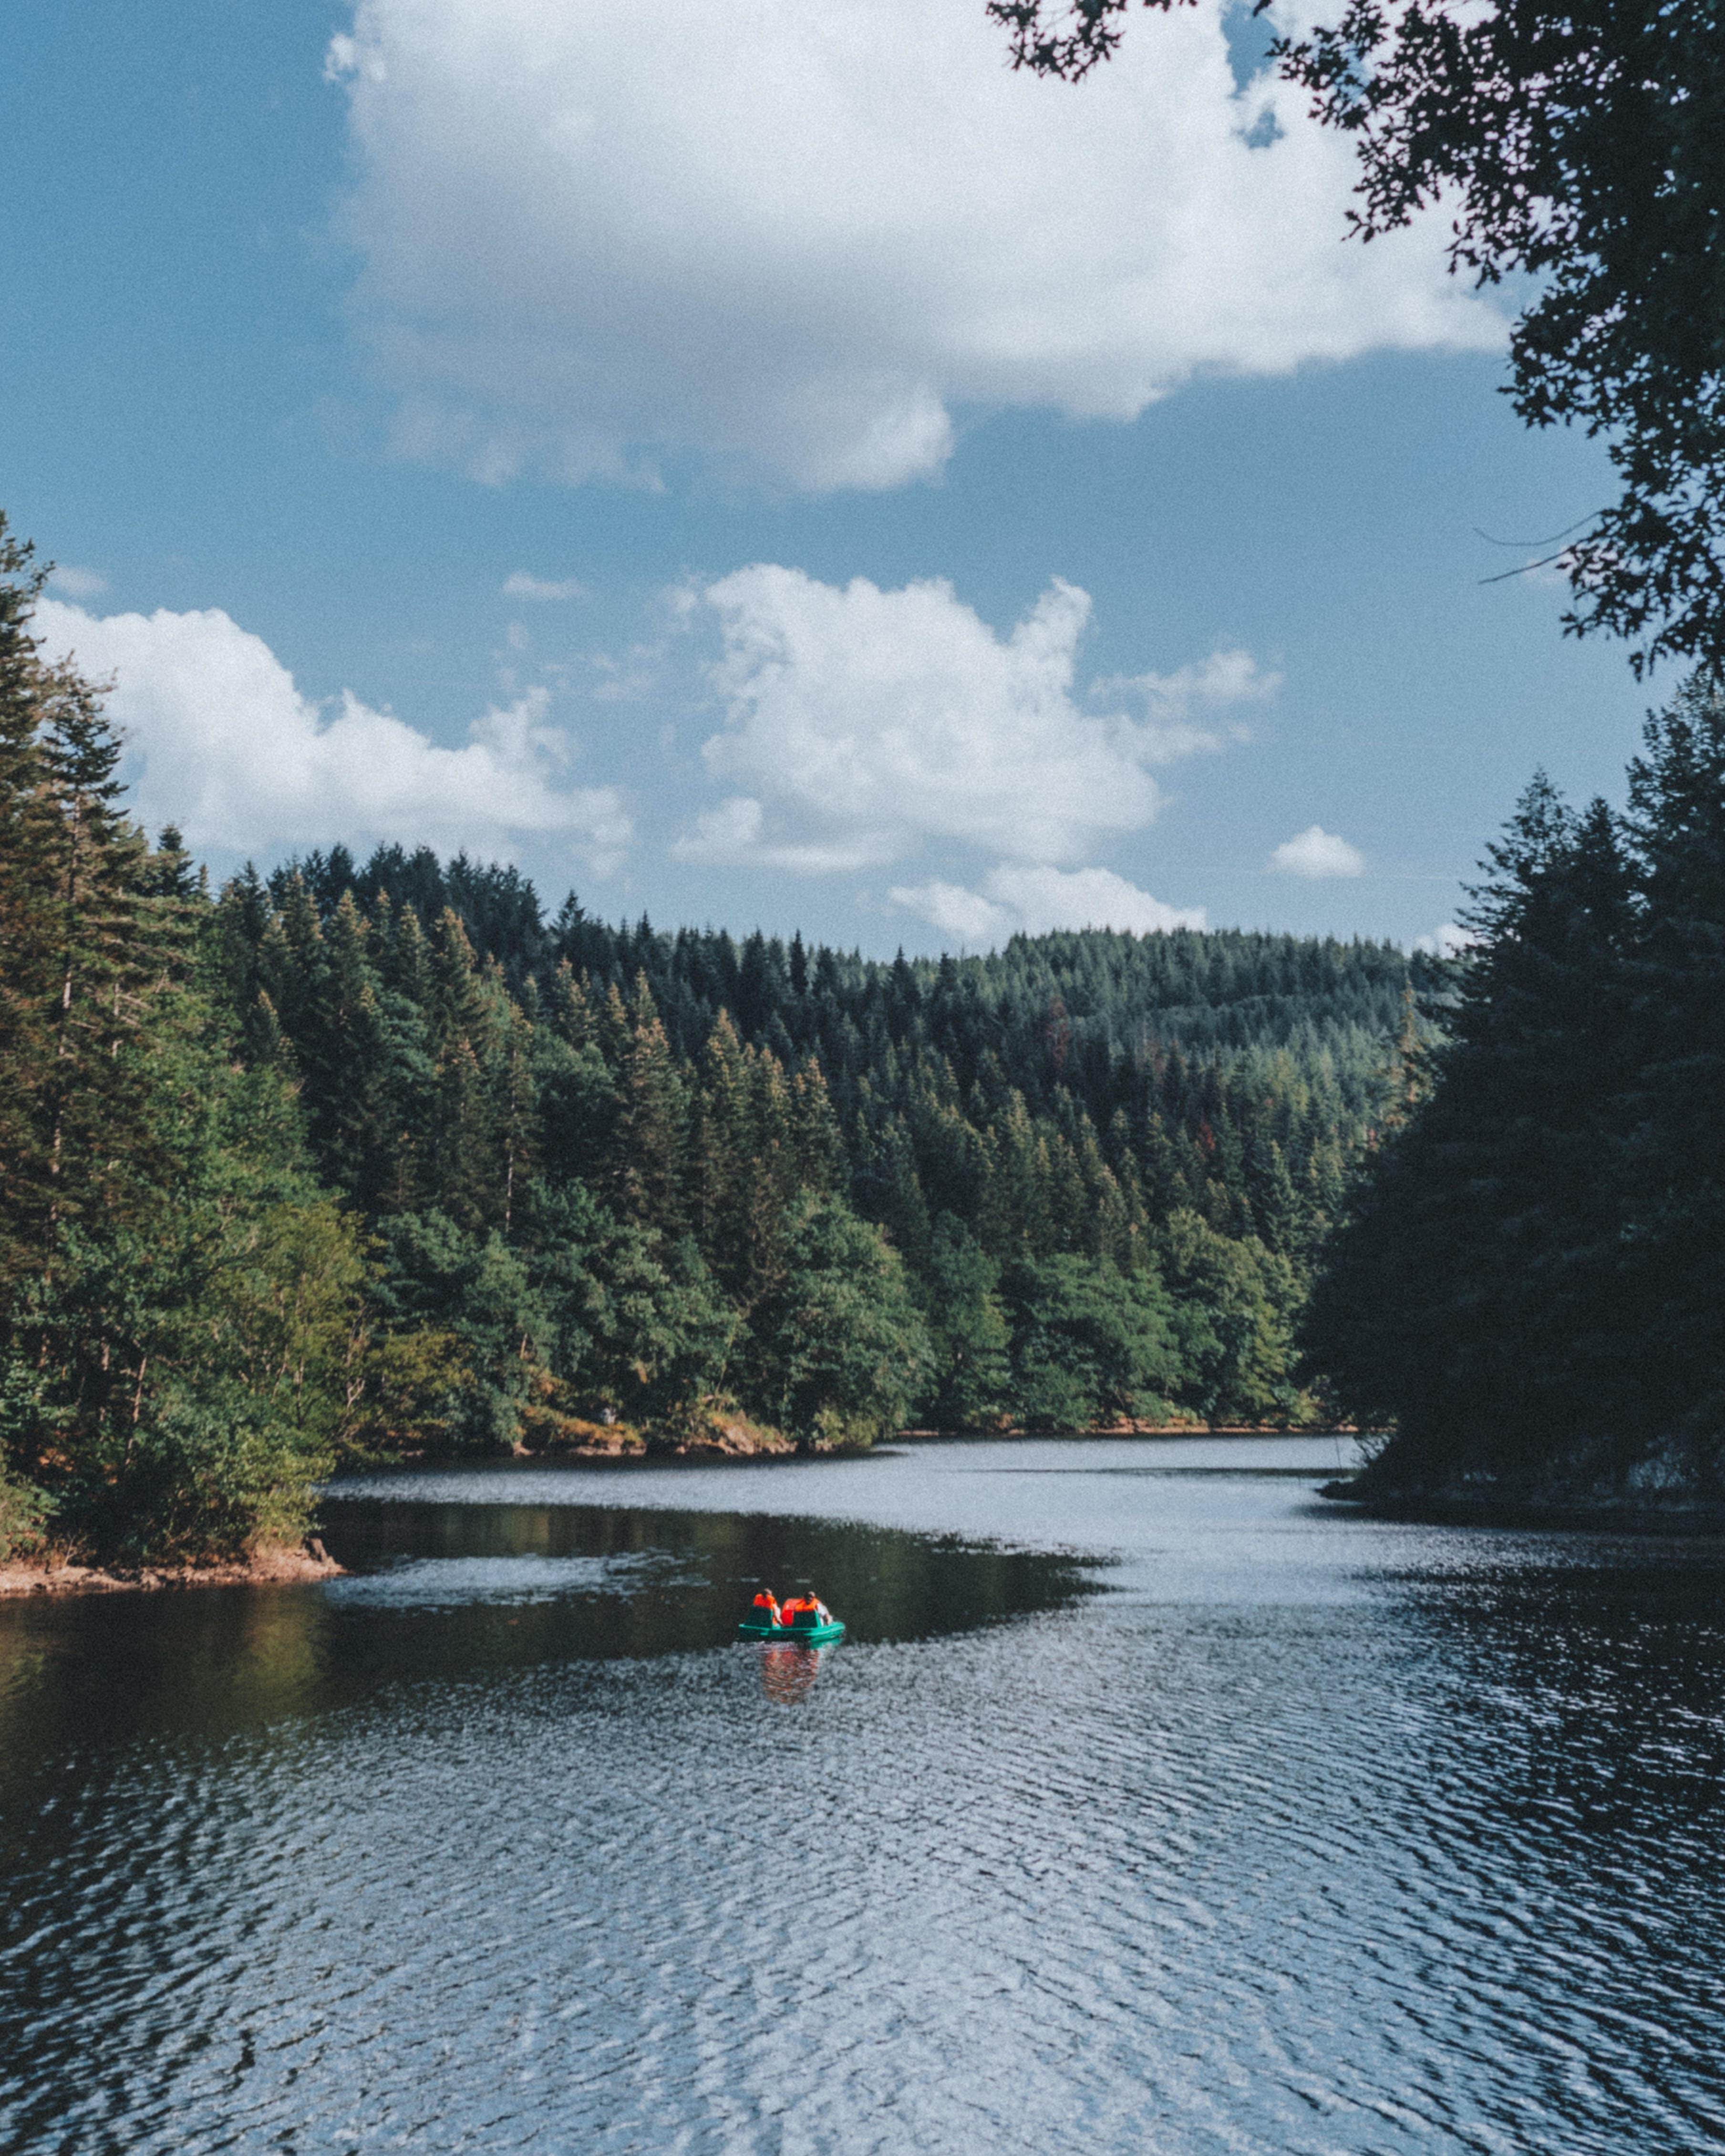 Person Riding Swimming Ring on Body of Water Surrounded With Trees